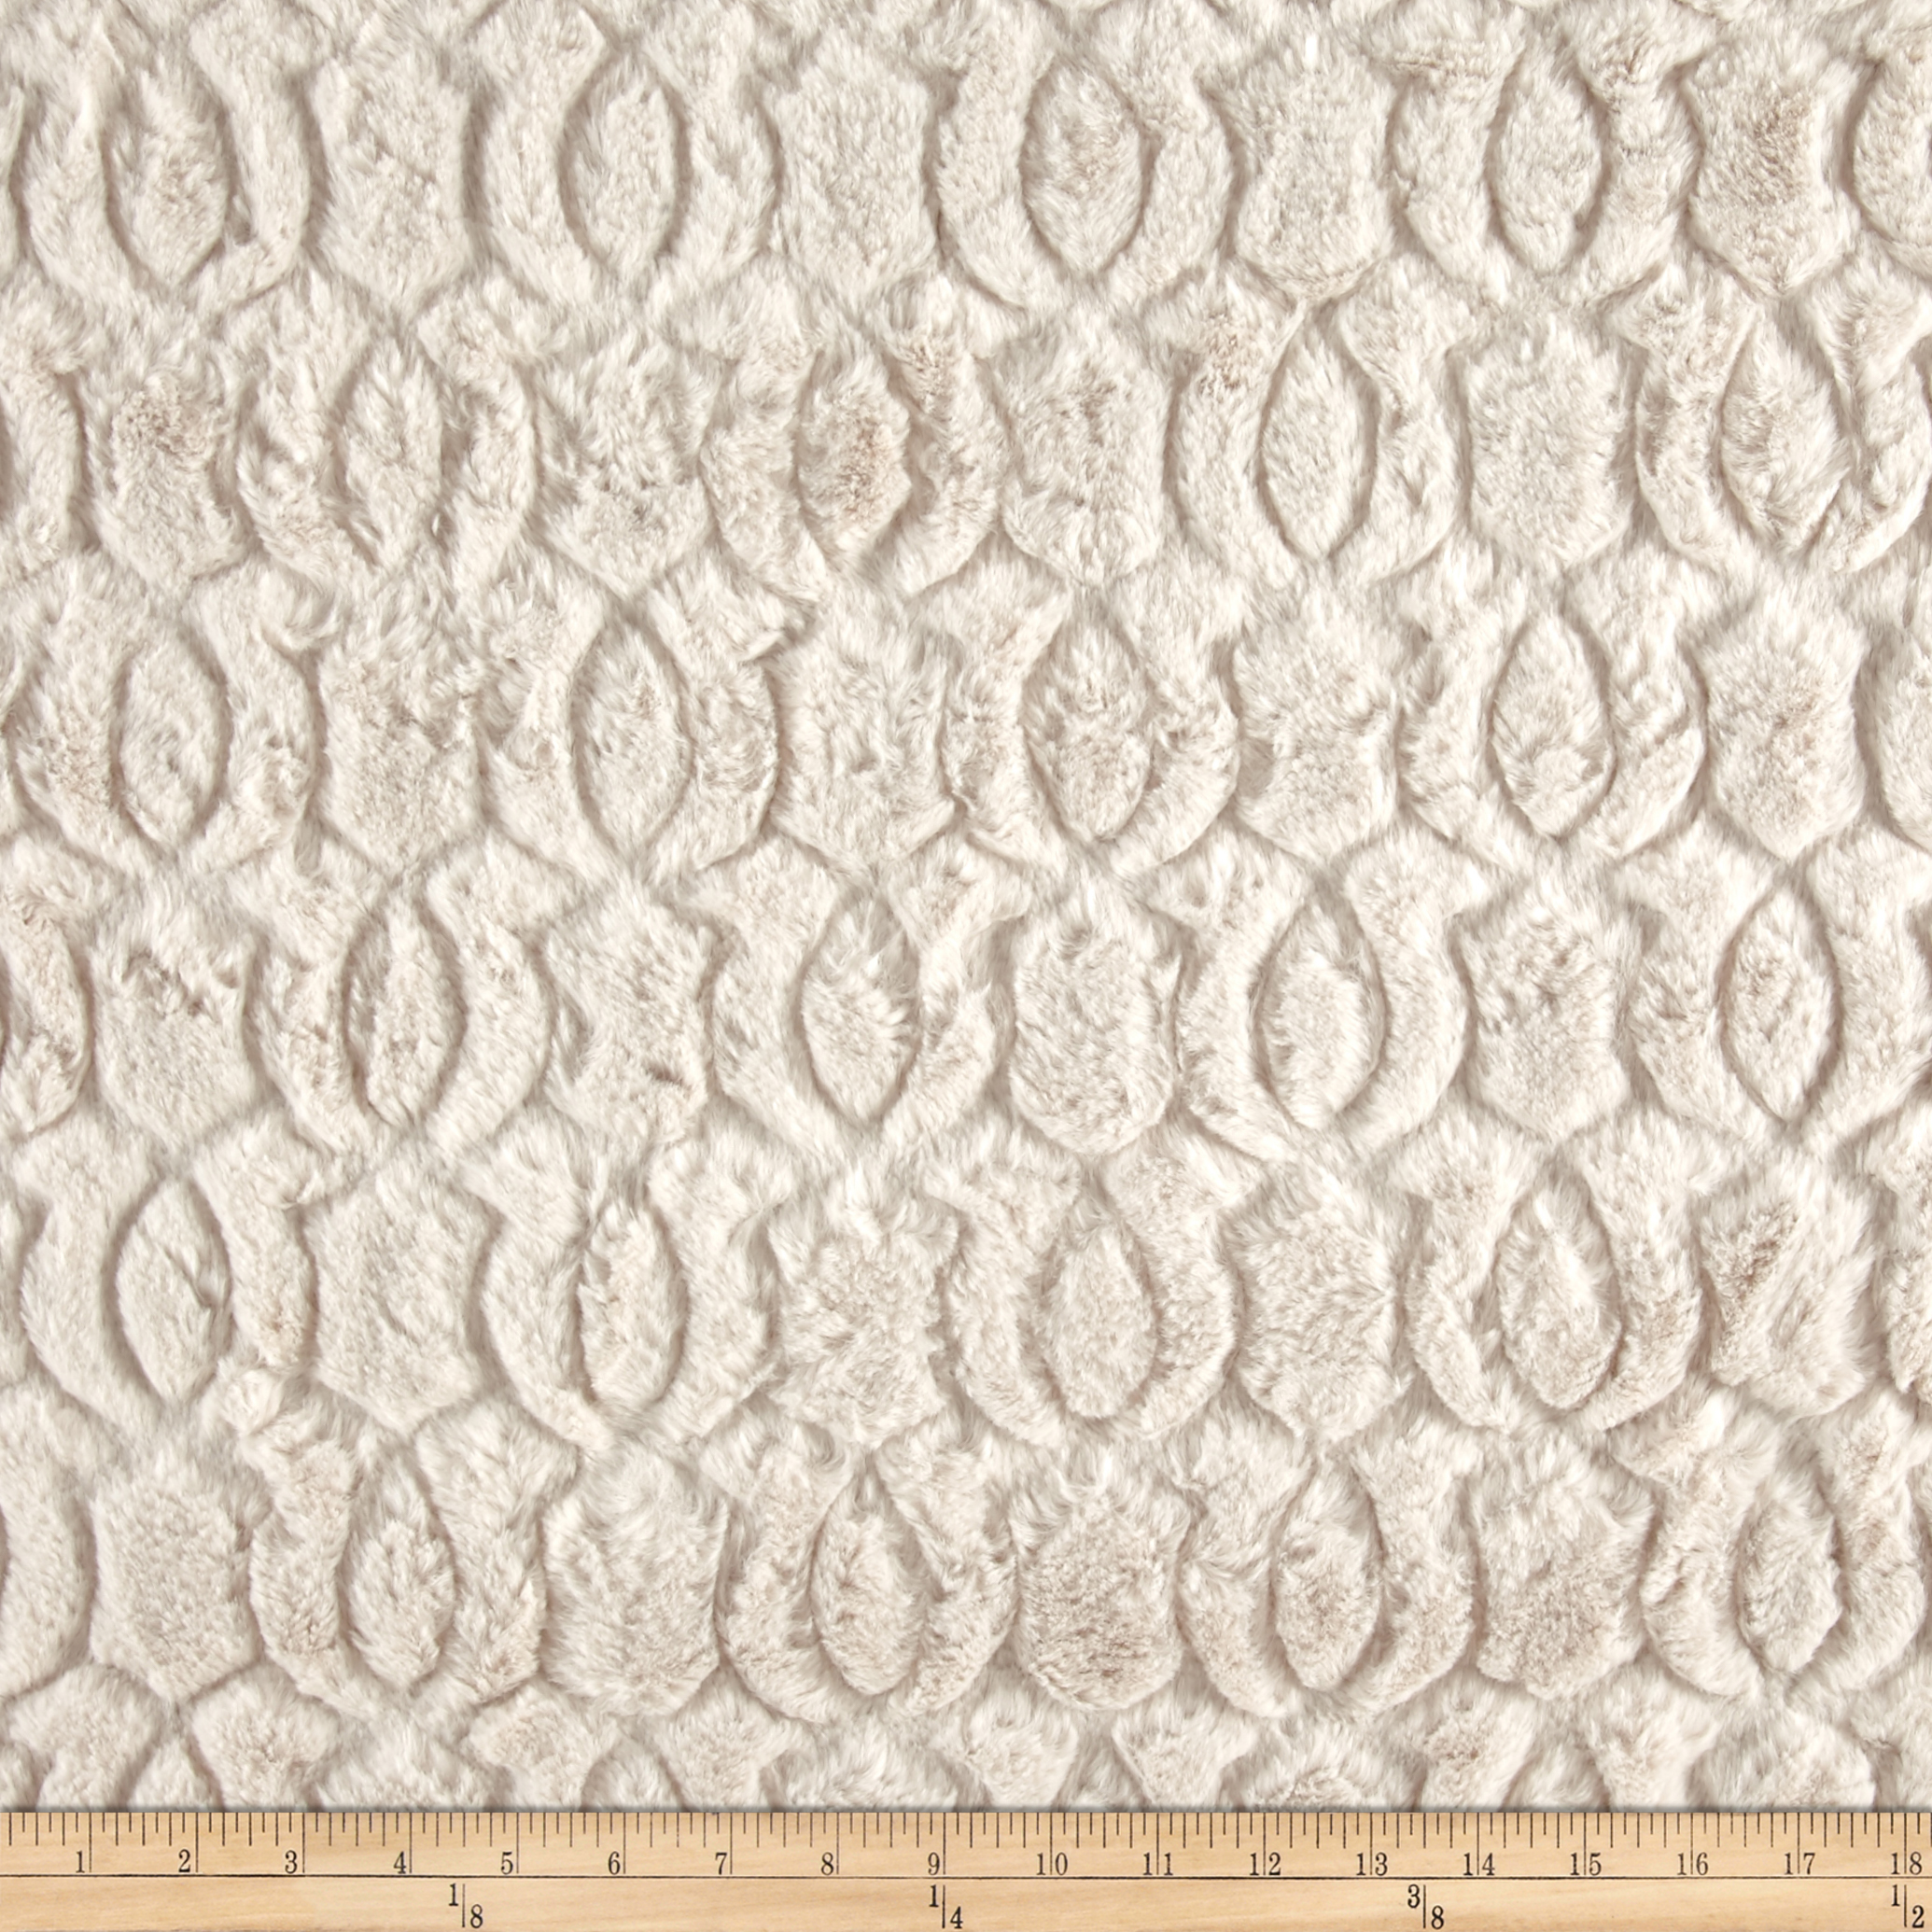 Minky Moscow Snuggle Sand Fabric by E.Z Fabric in USA